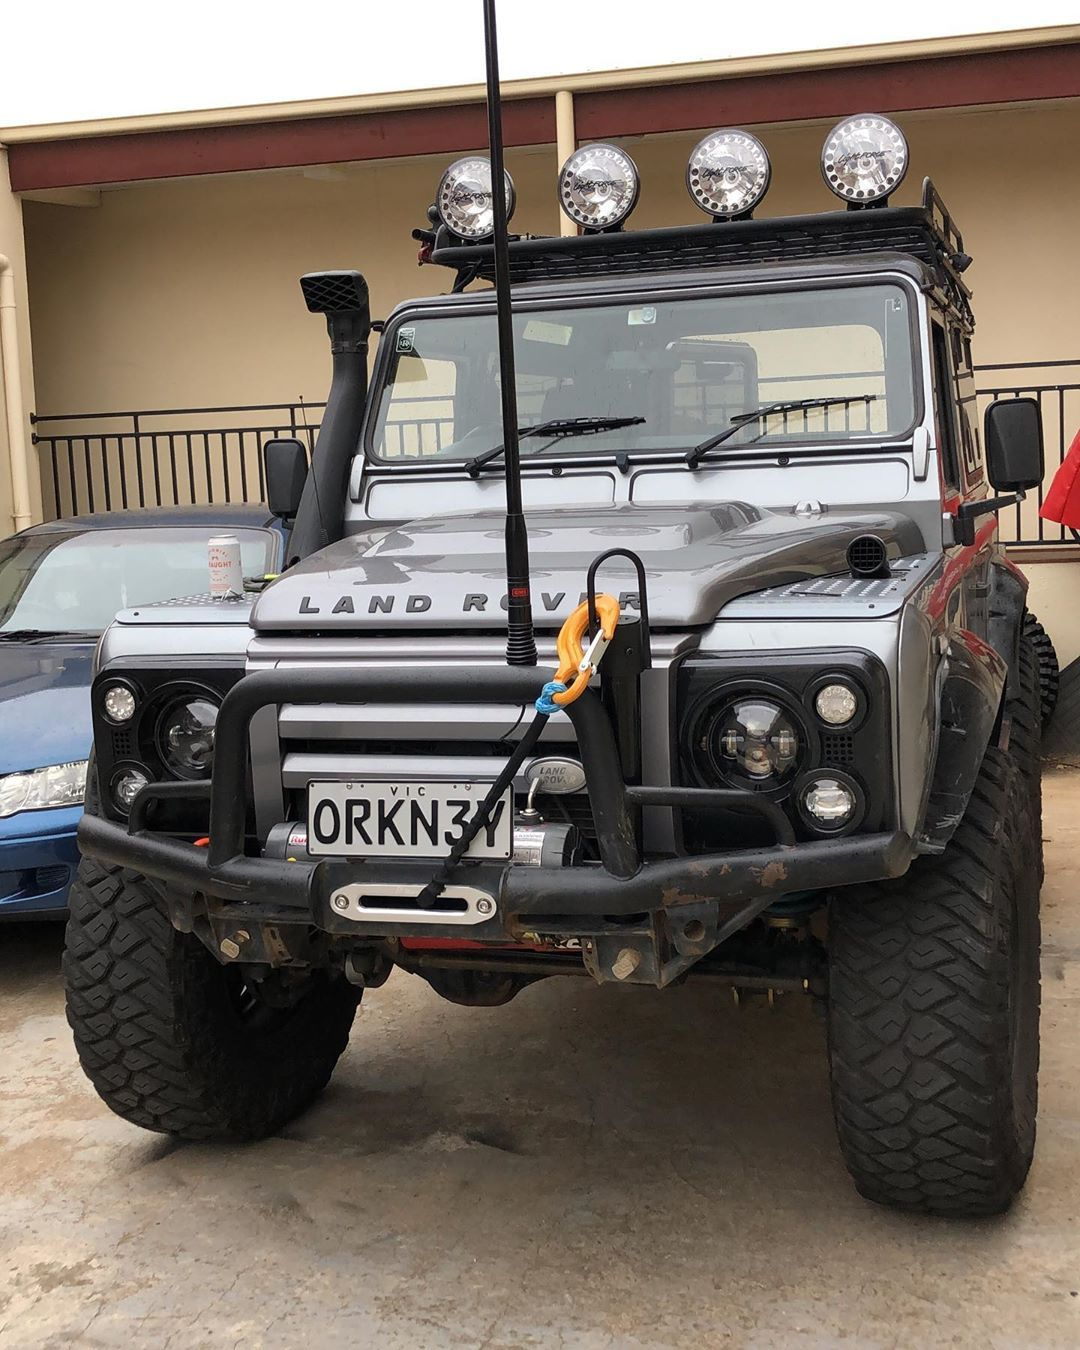 1 545 Likes 13 Comments Defender 90 Orkney Defender90 Orkney On Instagram Rightio Cleaned Up The Wiring 2x Land Rover Land Rover Defender Jeep Truck